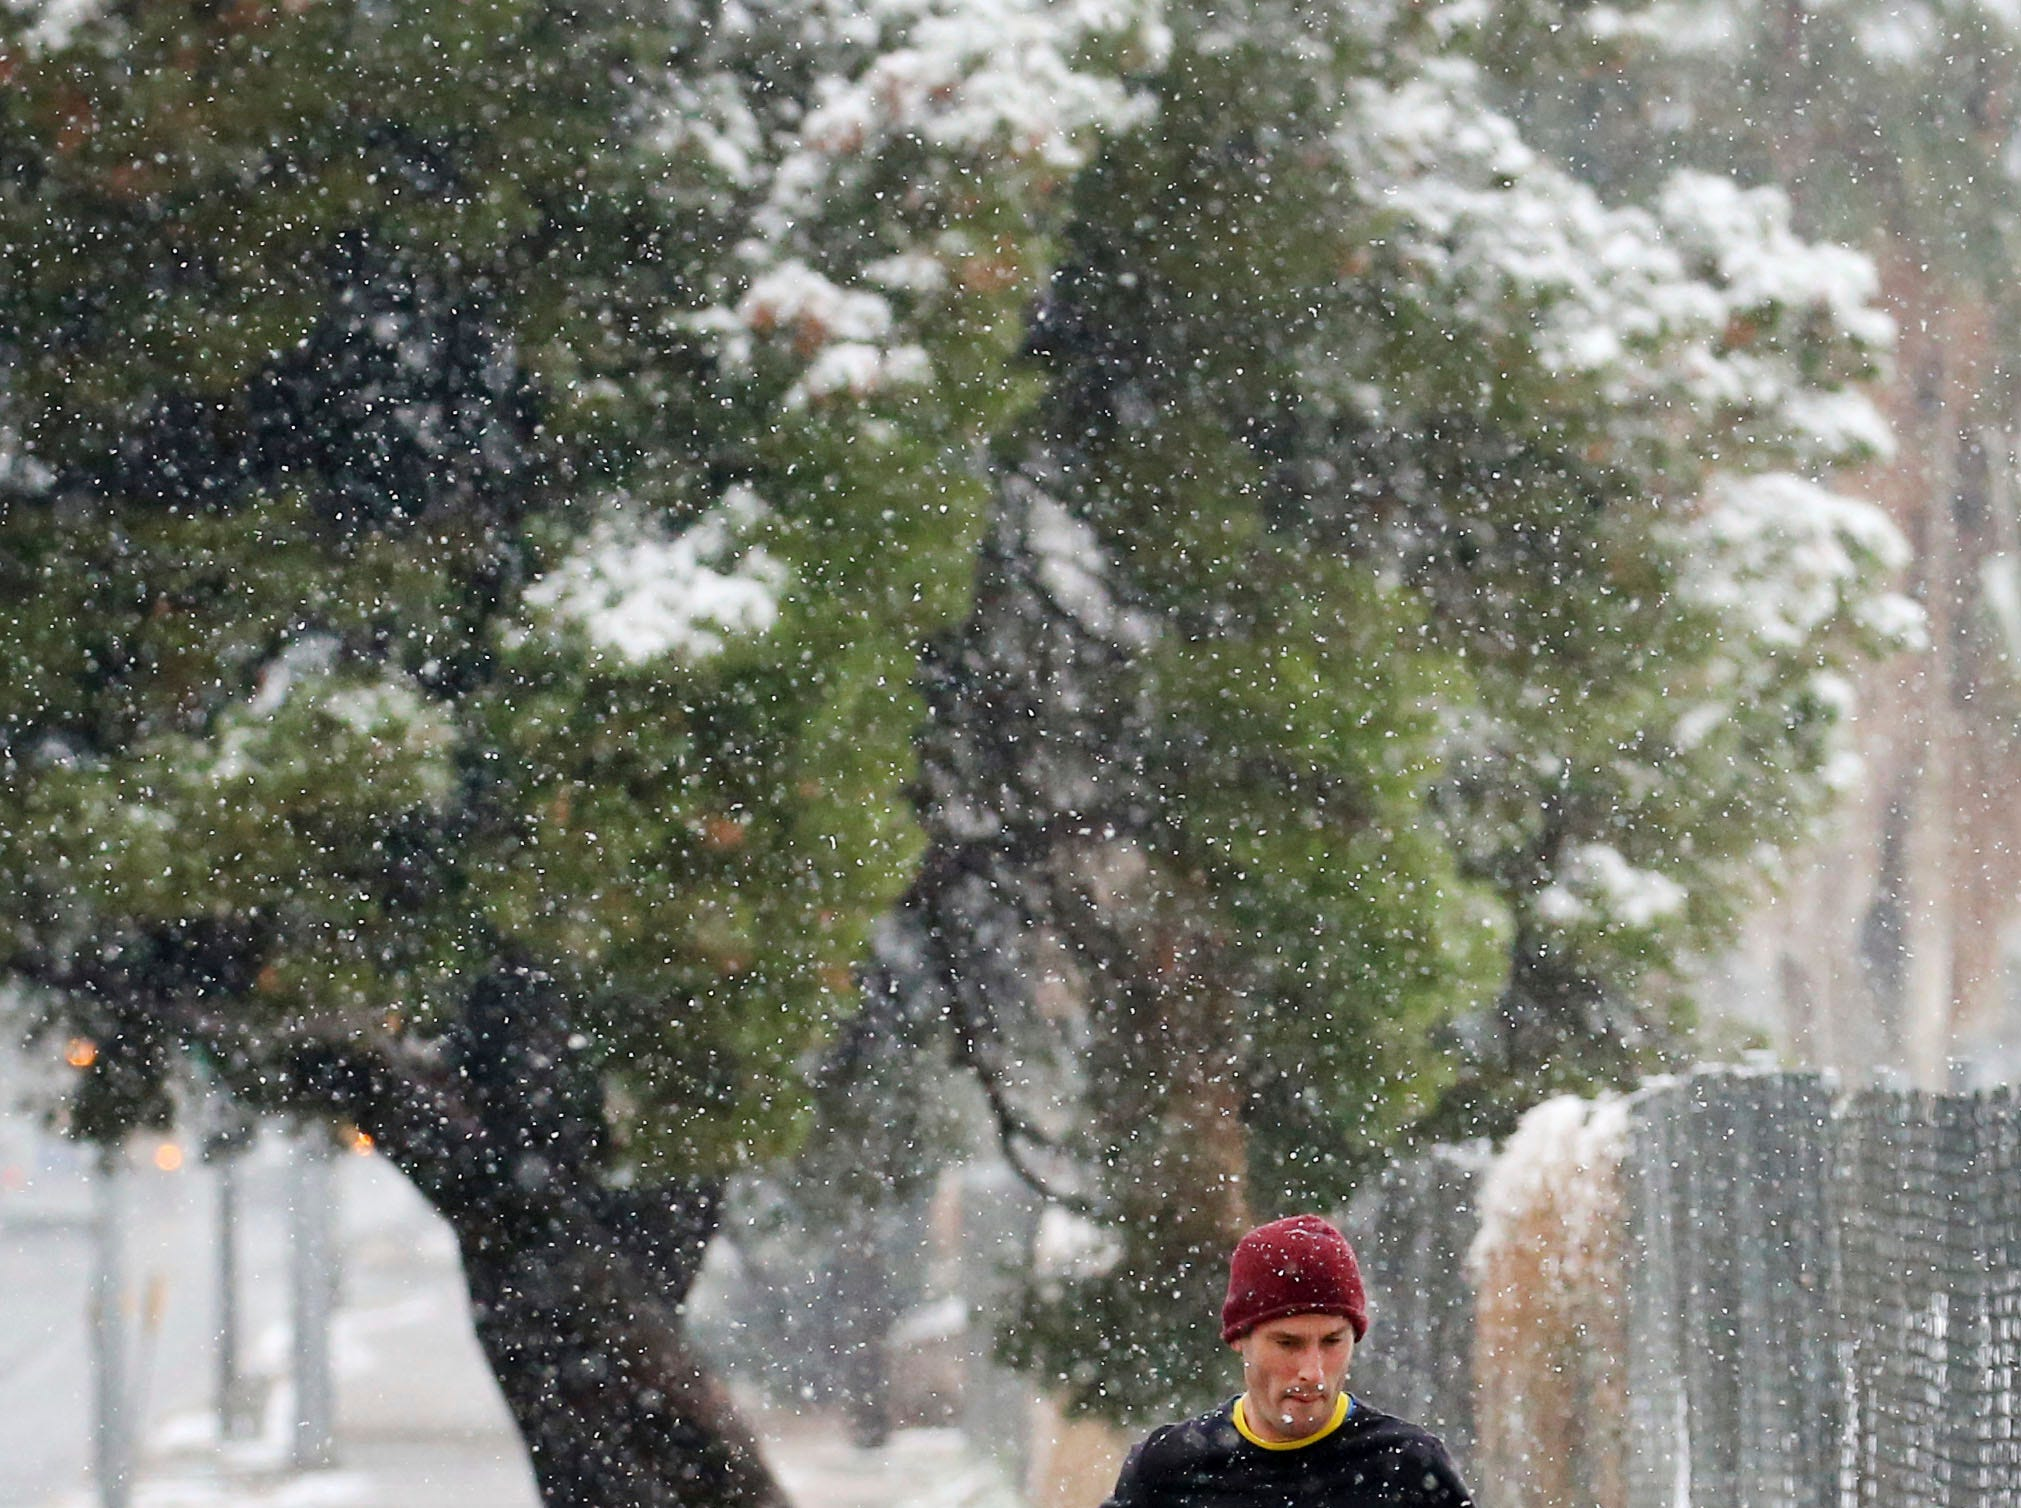 A jogger runs around the Randolph Golf complex, Friday, Feb. 22, 2019, in Tucson, Ariz.  Snow fell and accumulated in central and downtown Tucson on Friday, surprising many in a city where snow is extremely rare.